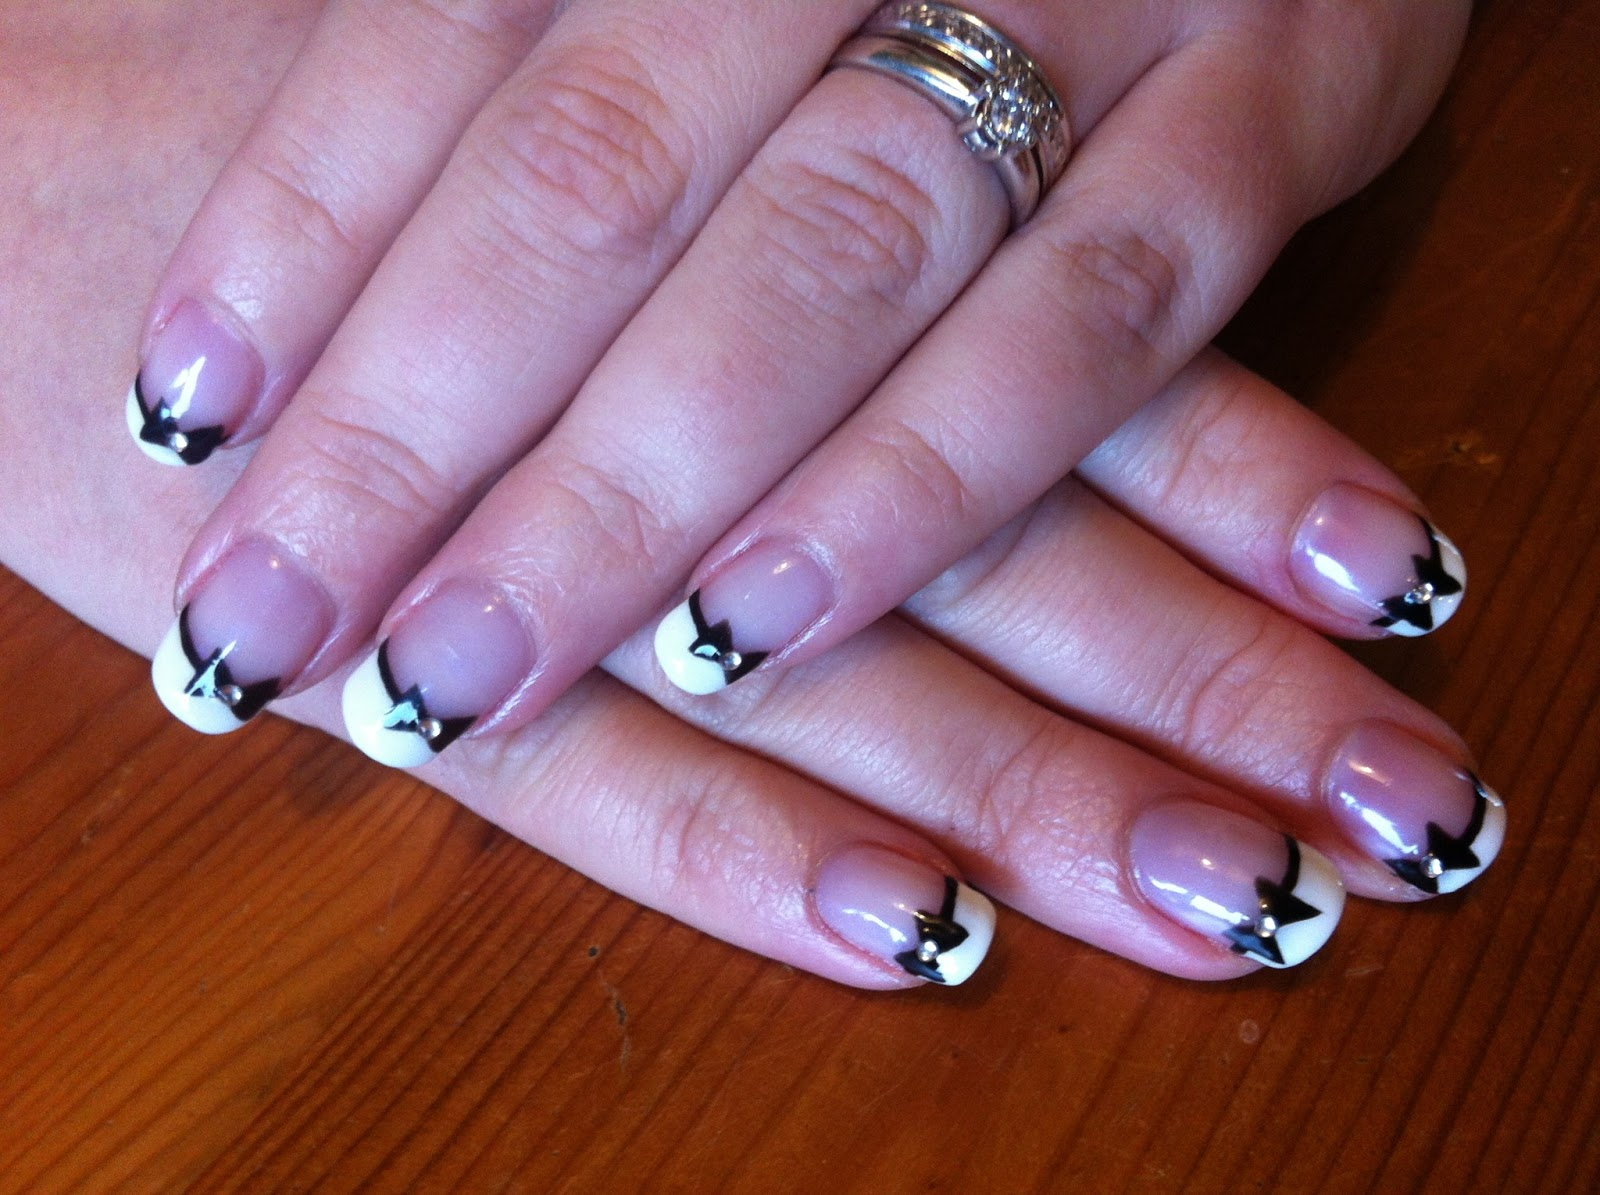 Brush up and Polish up!: CND Shellac Nail Art - French Manicure with